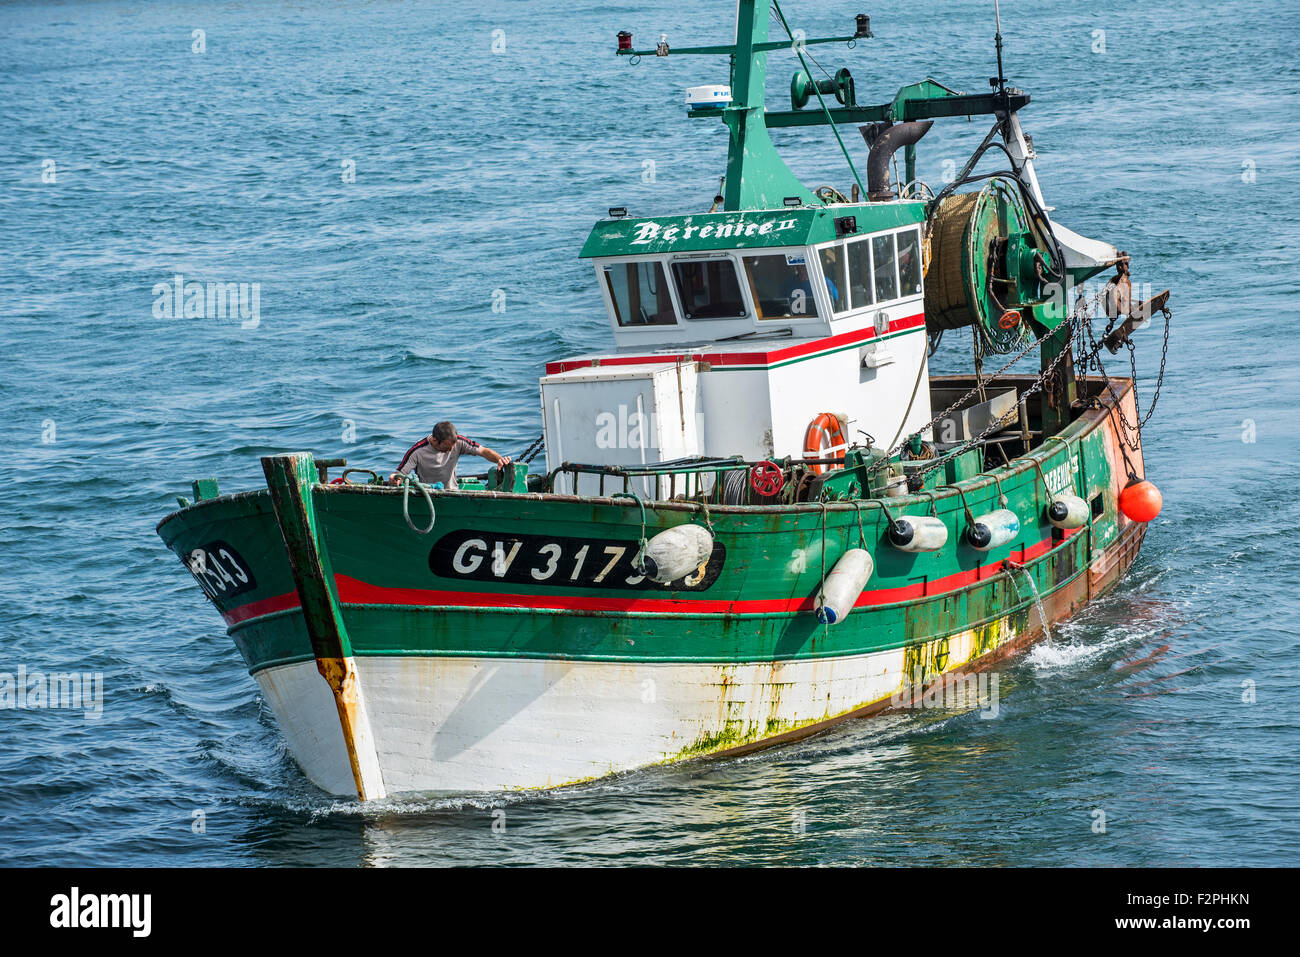 Fisherman on board of green wooden trawler fishing boat at for Sea fishing boats